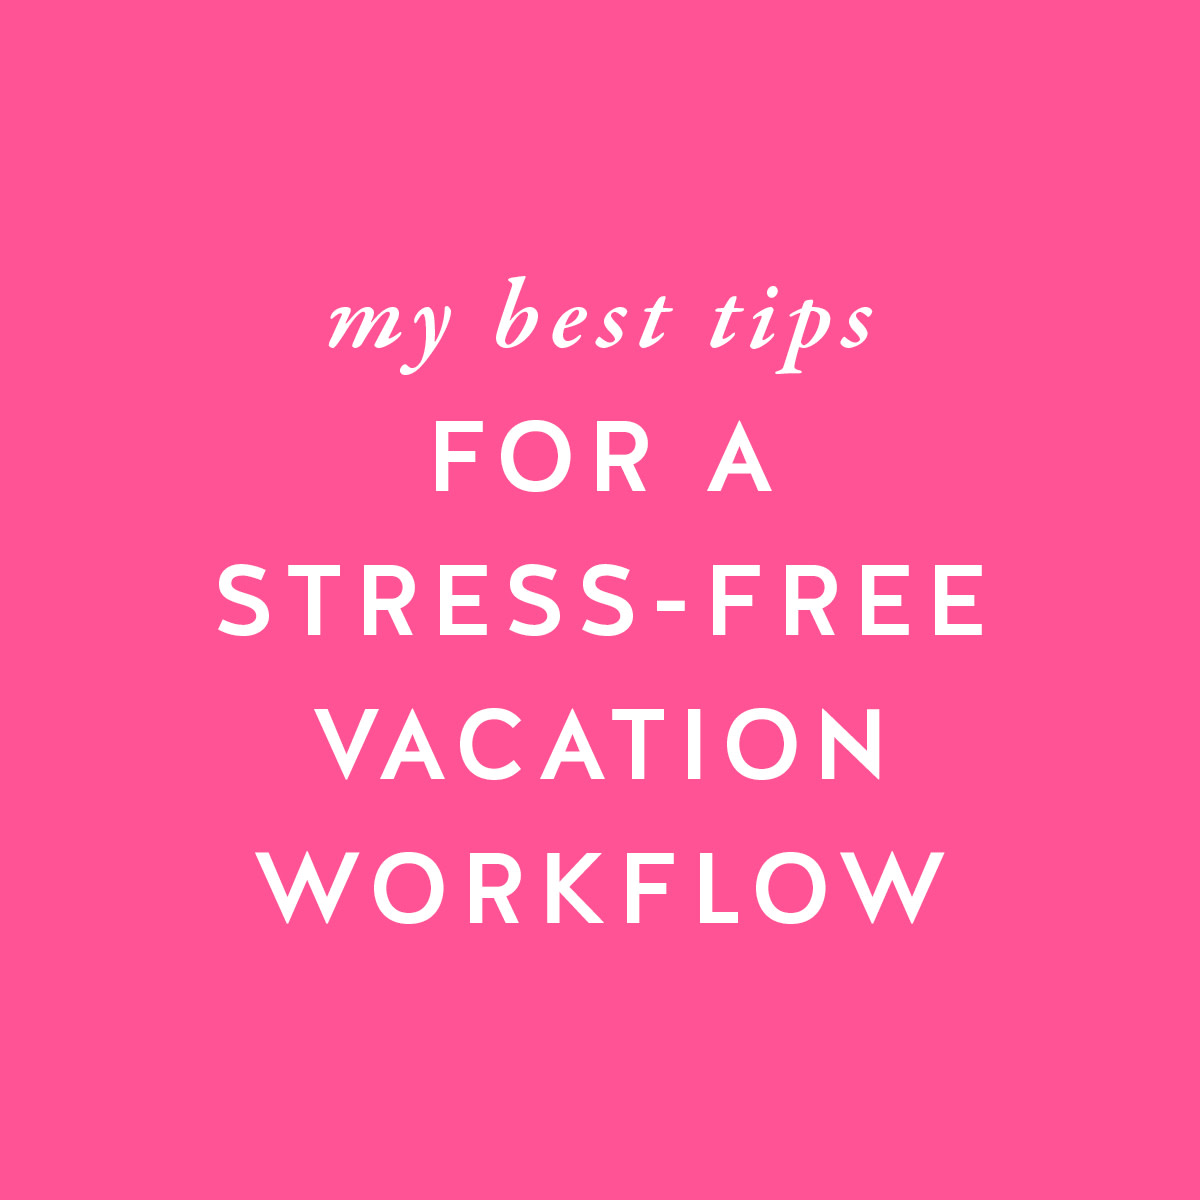 Working on vacation shouldn't be complicated or stressful. It should be simple and effective. http://bit.ly/2JdDPFT  #femaleentrepreneur #entrepreneurlife #productivitypic.twitter.com/bhcVBNLAsv